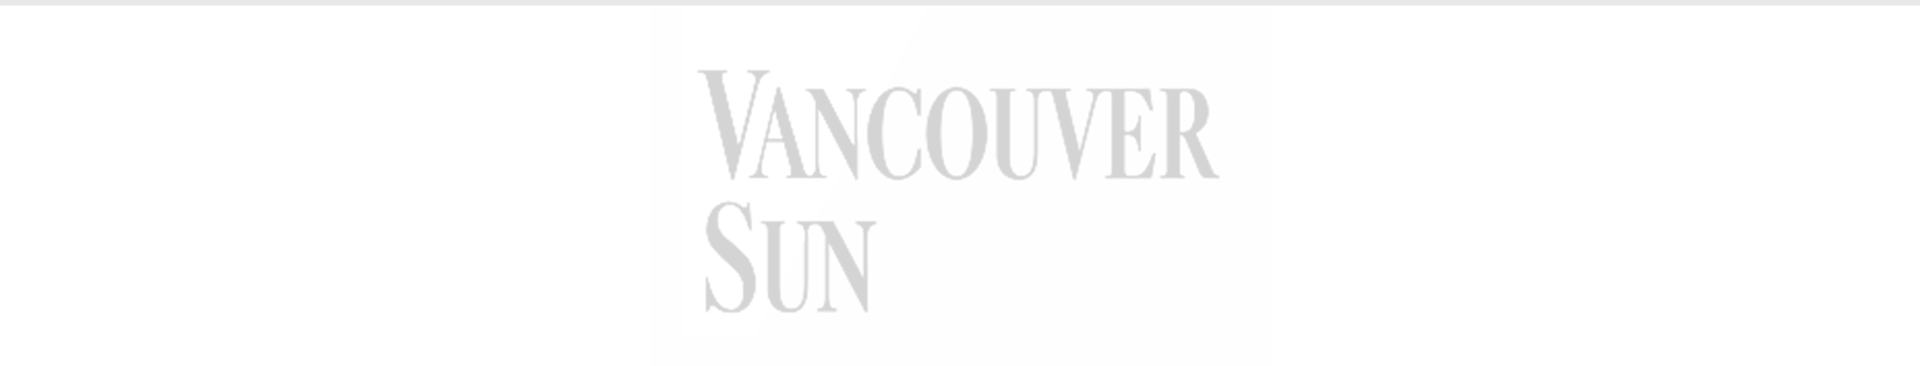 vancouver-sun-footer